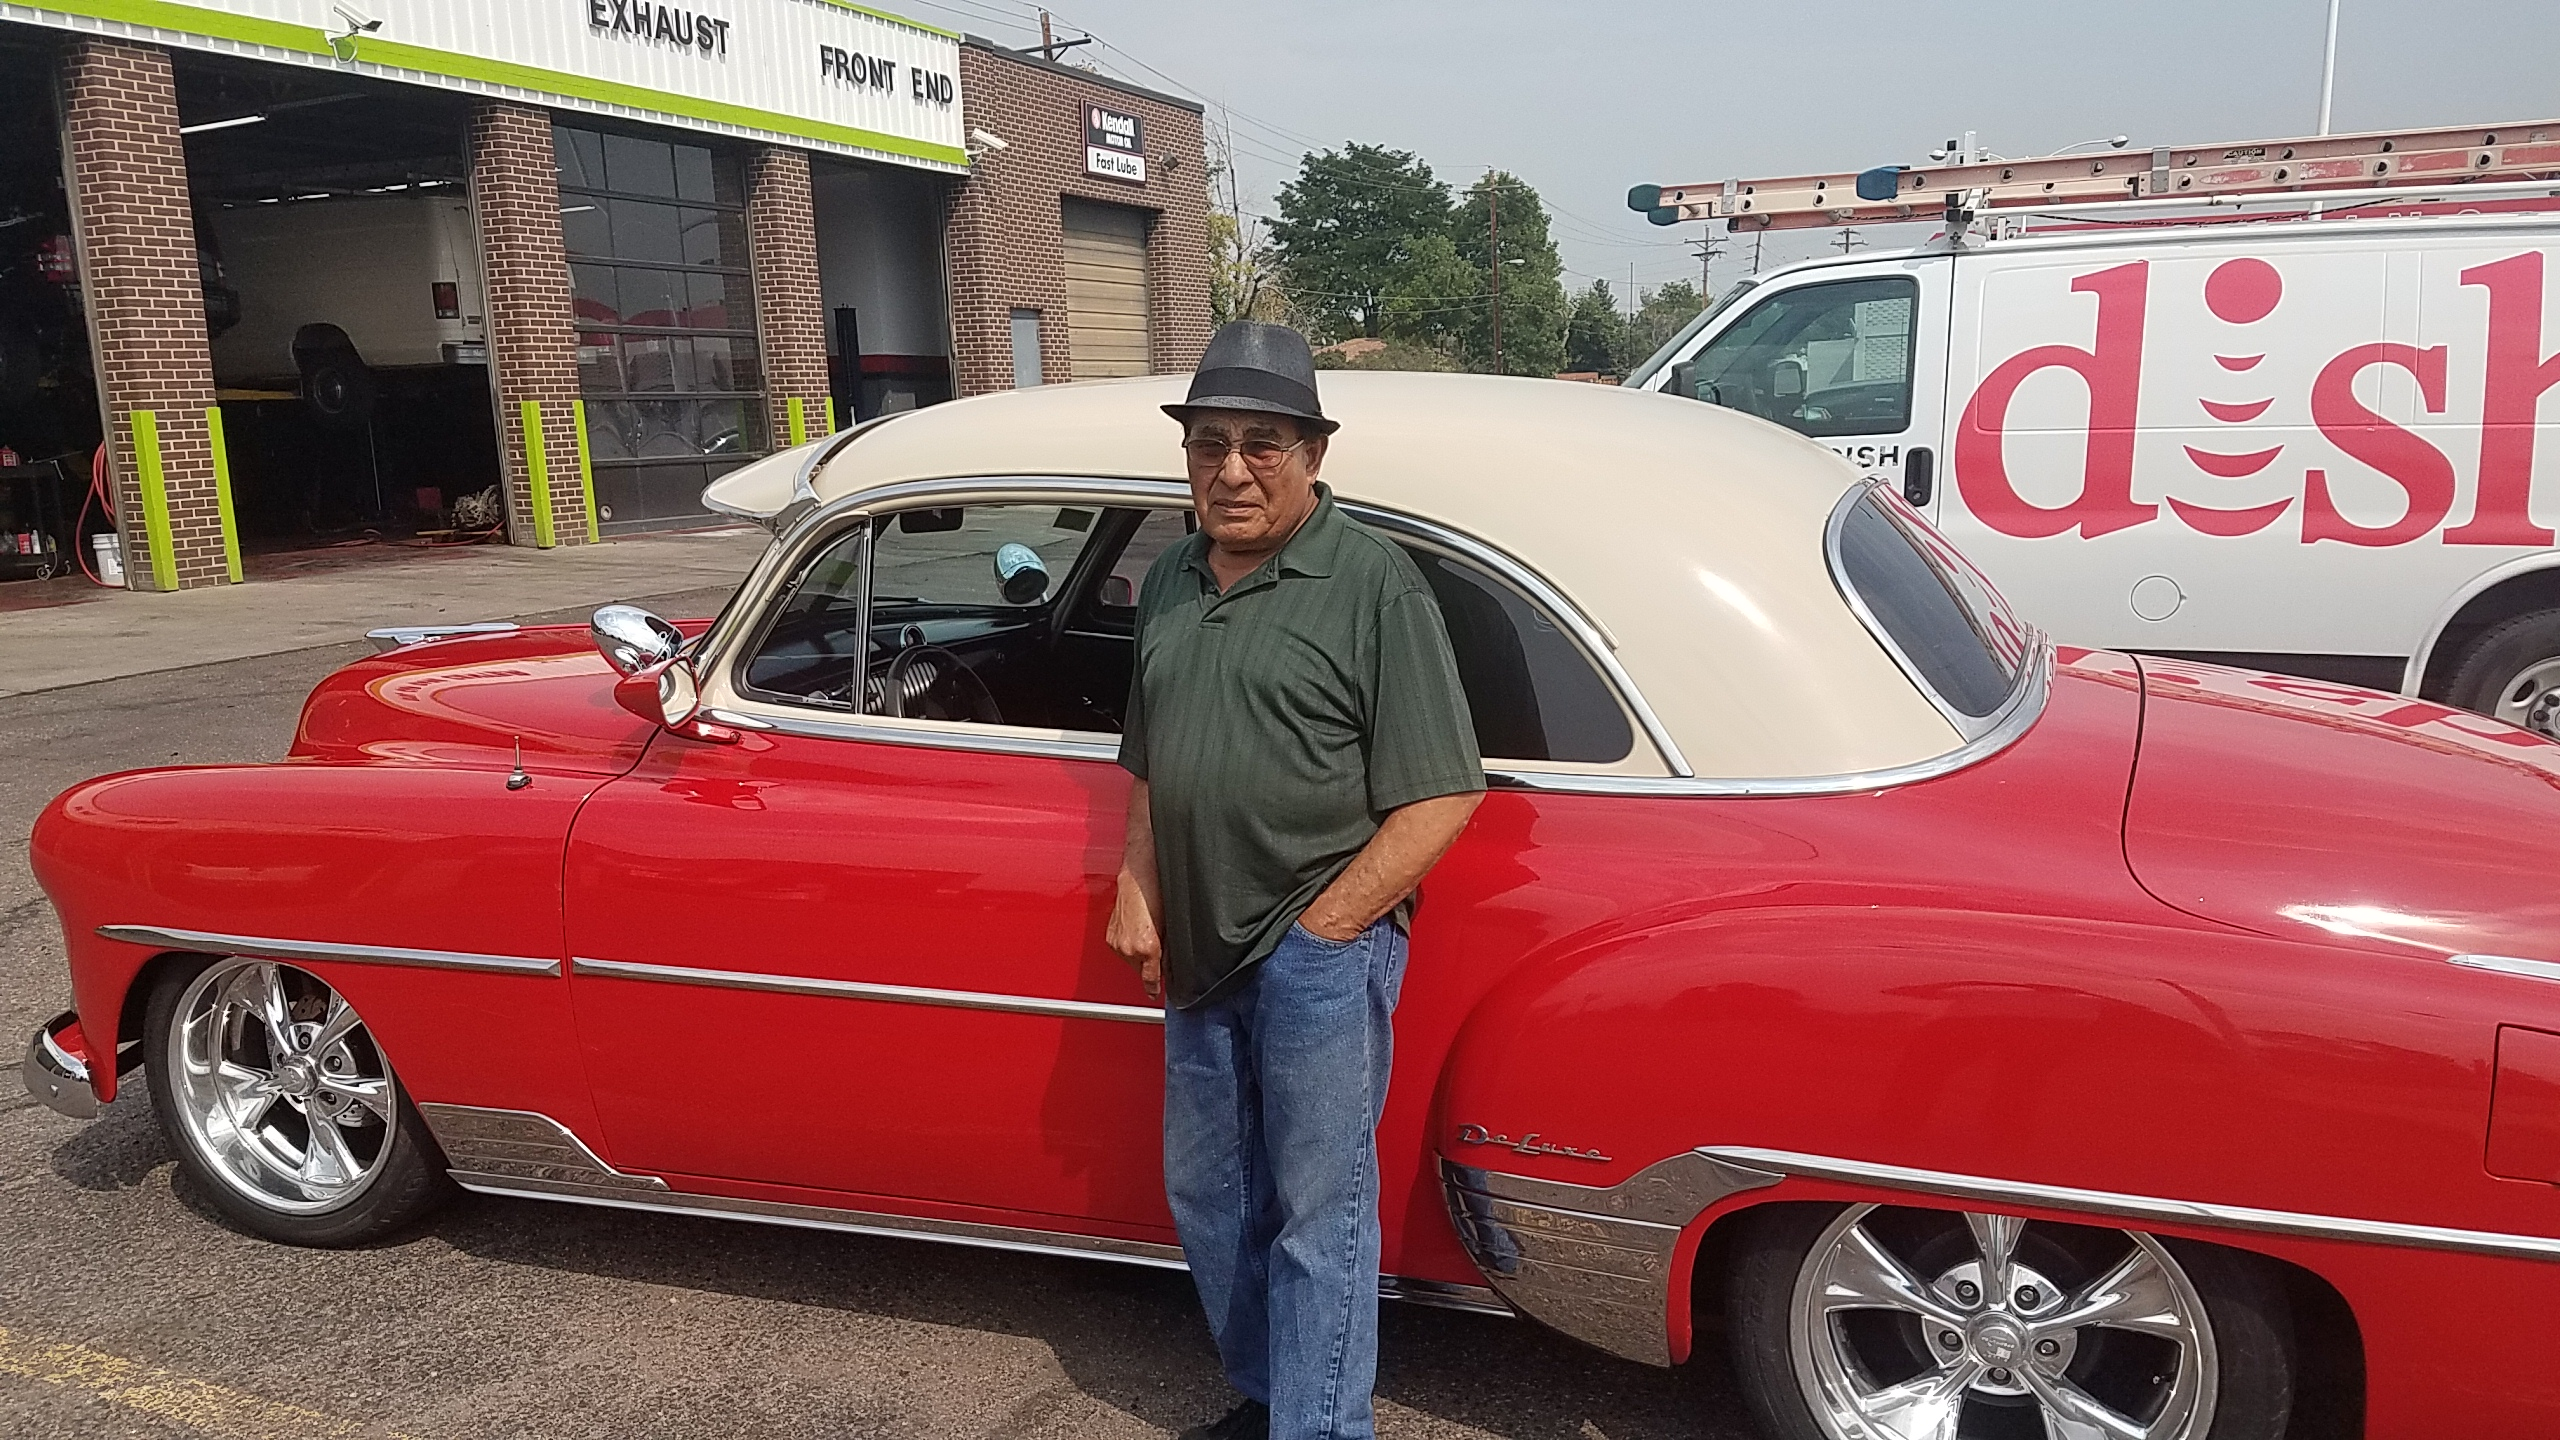 The owner of the '54 Chevy Deluxe